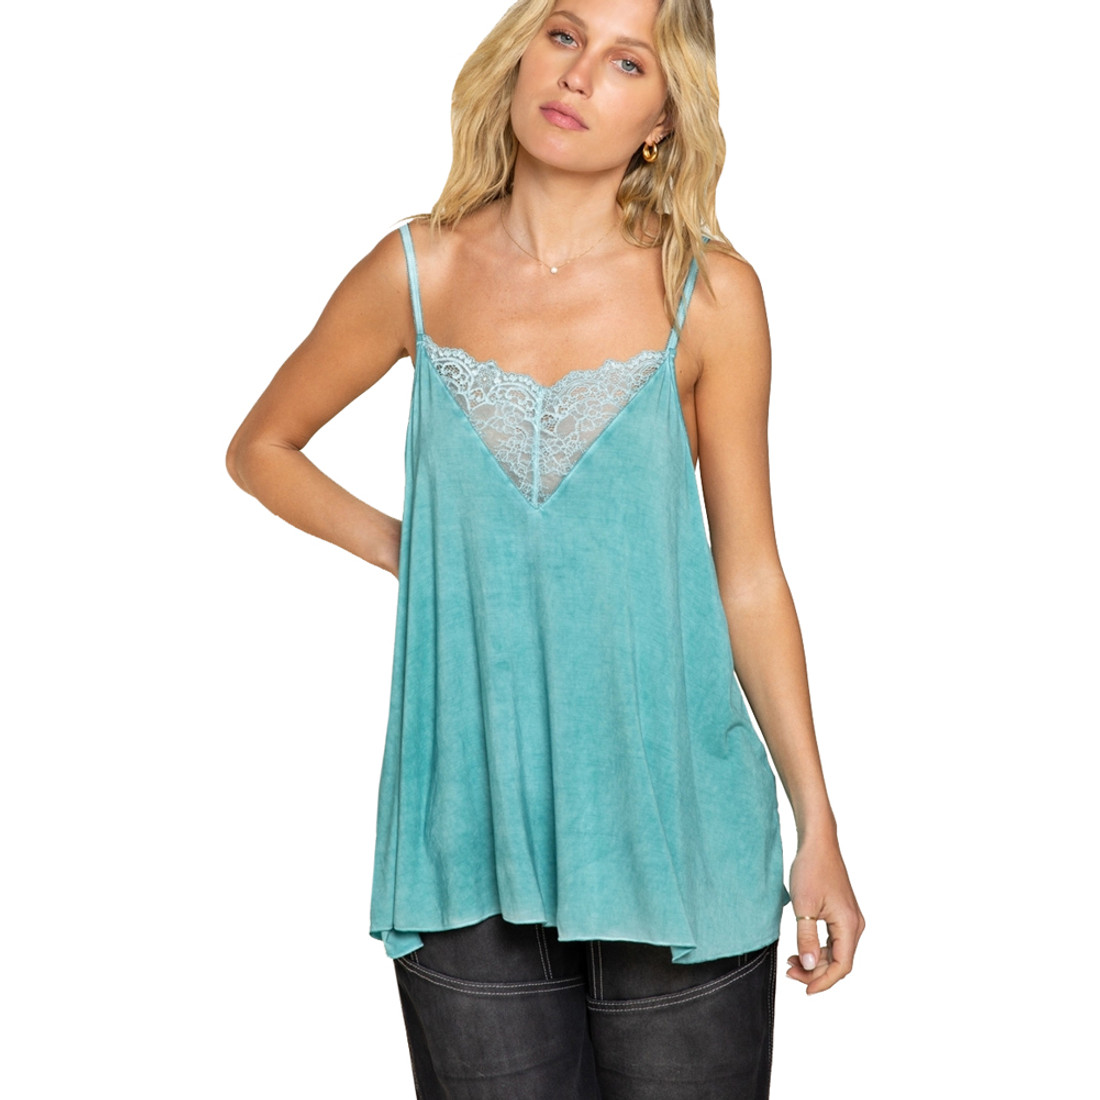 POL Clothing Camisole Tank Top